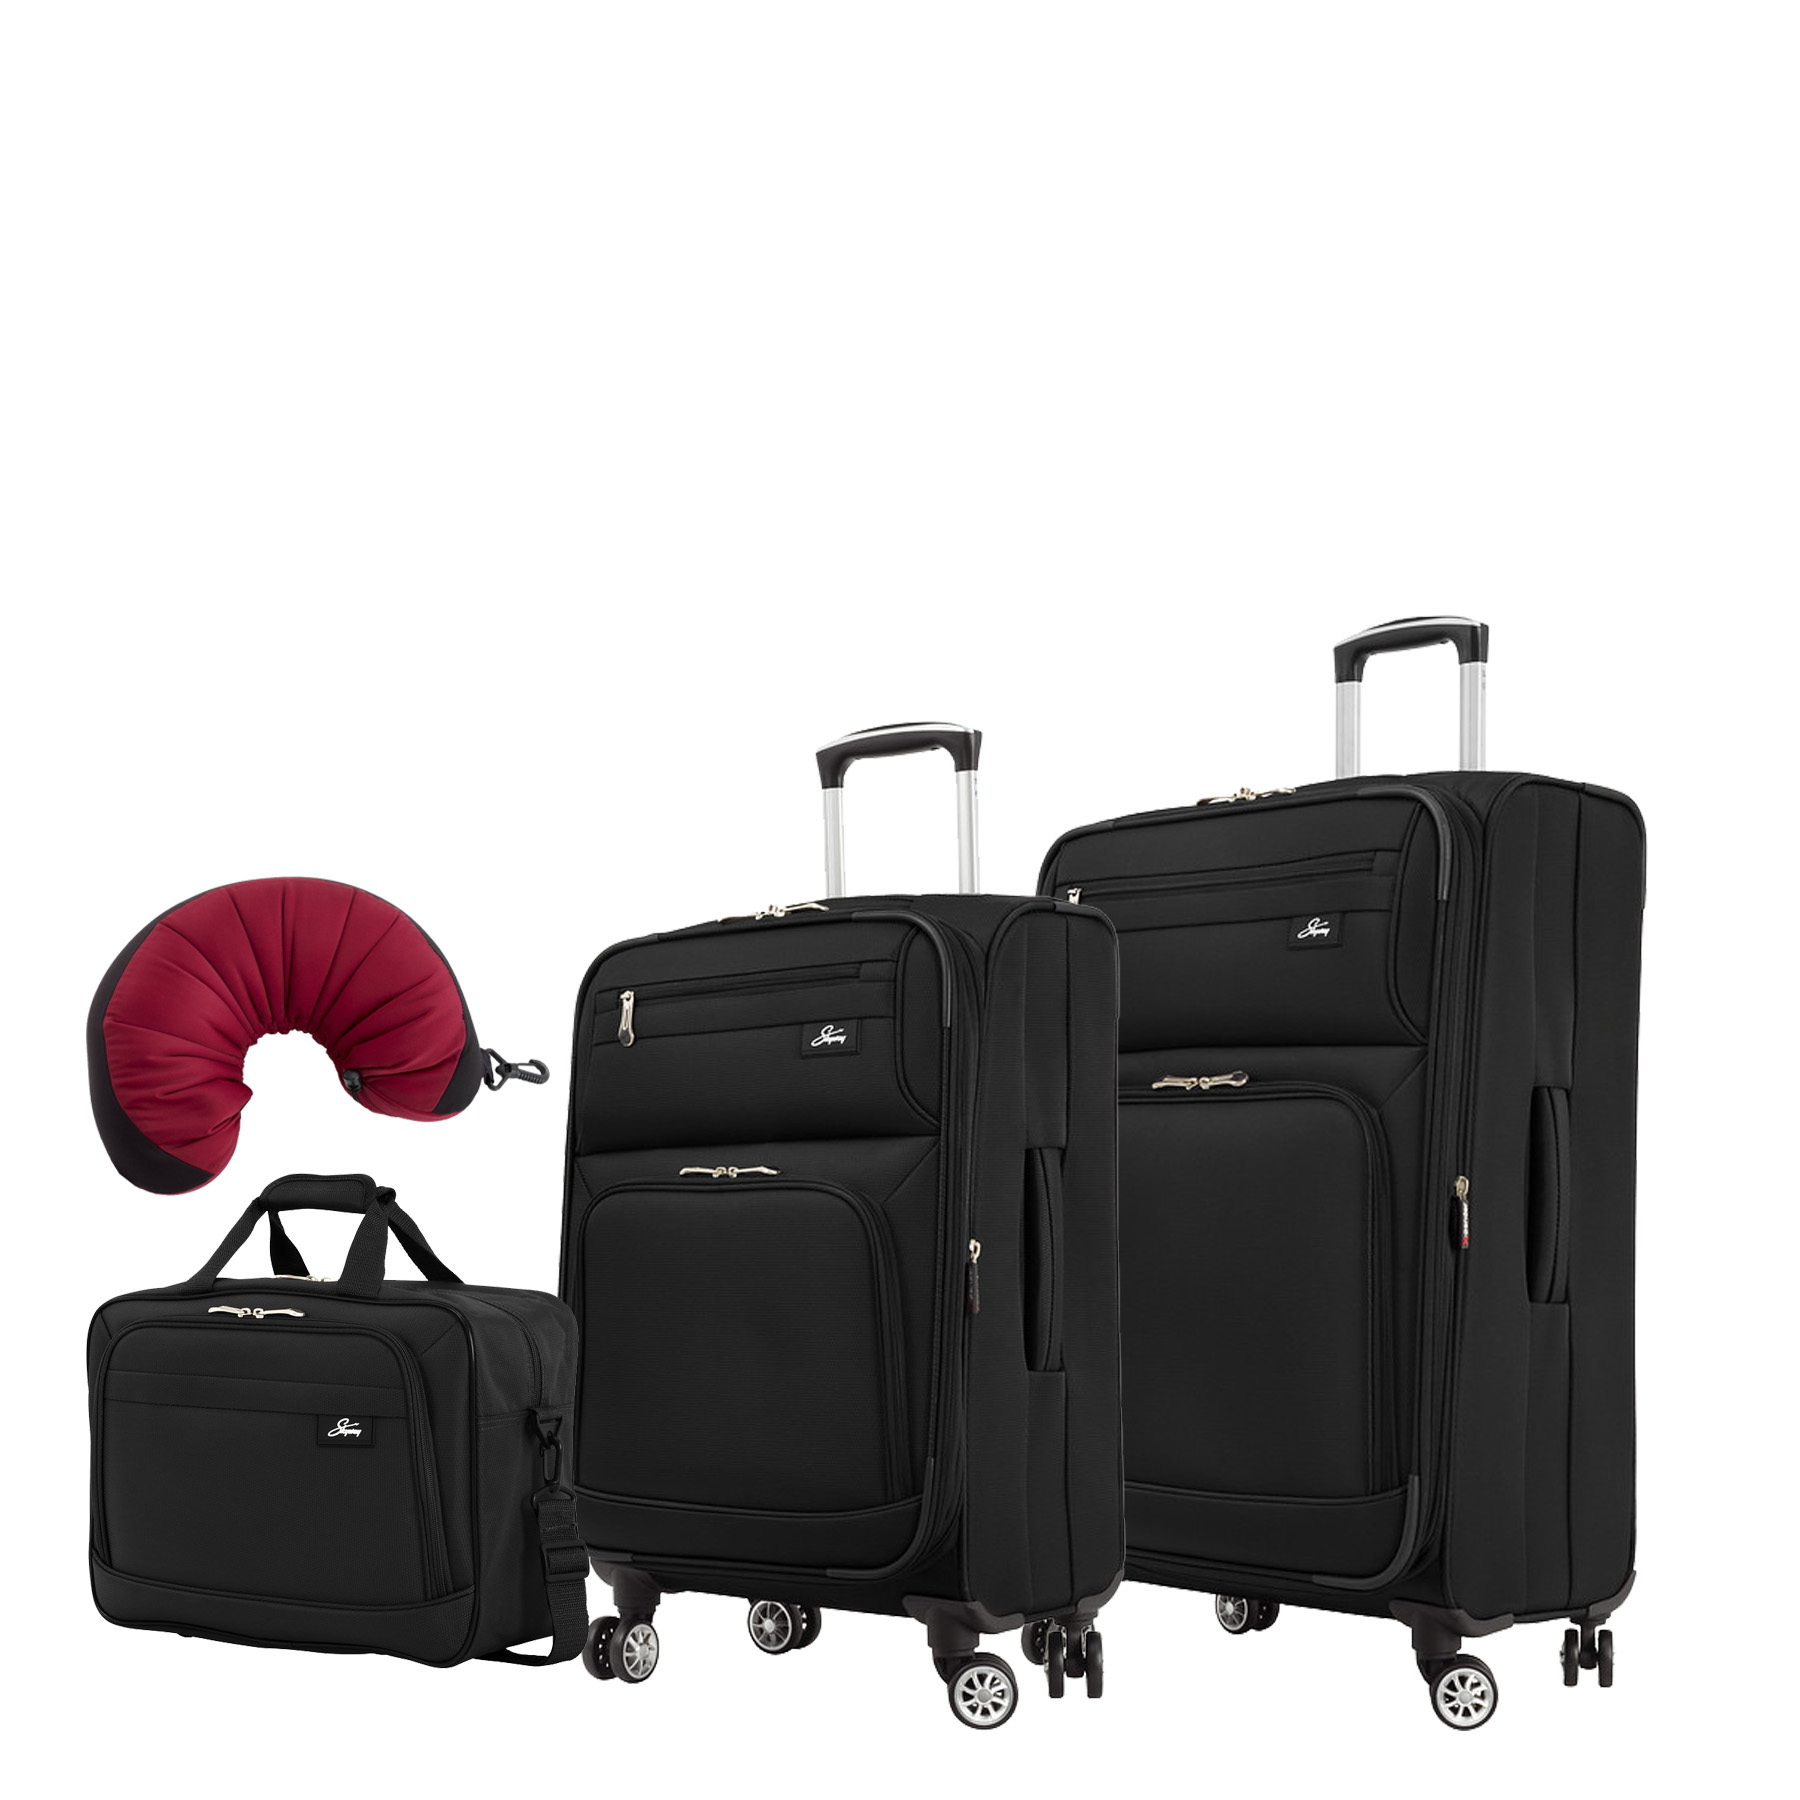 "Skyway Sigma 5.0 | 4-Piece Set | 16"" Shoulder Tote, 21"" and 25"" Expandable Spinners, Travel Pillow"